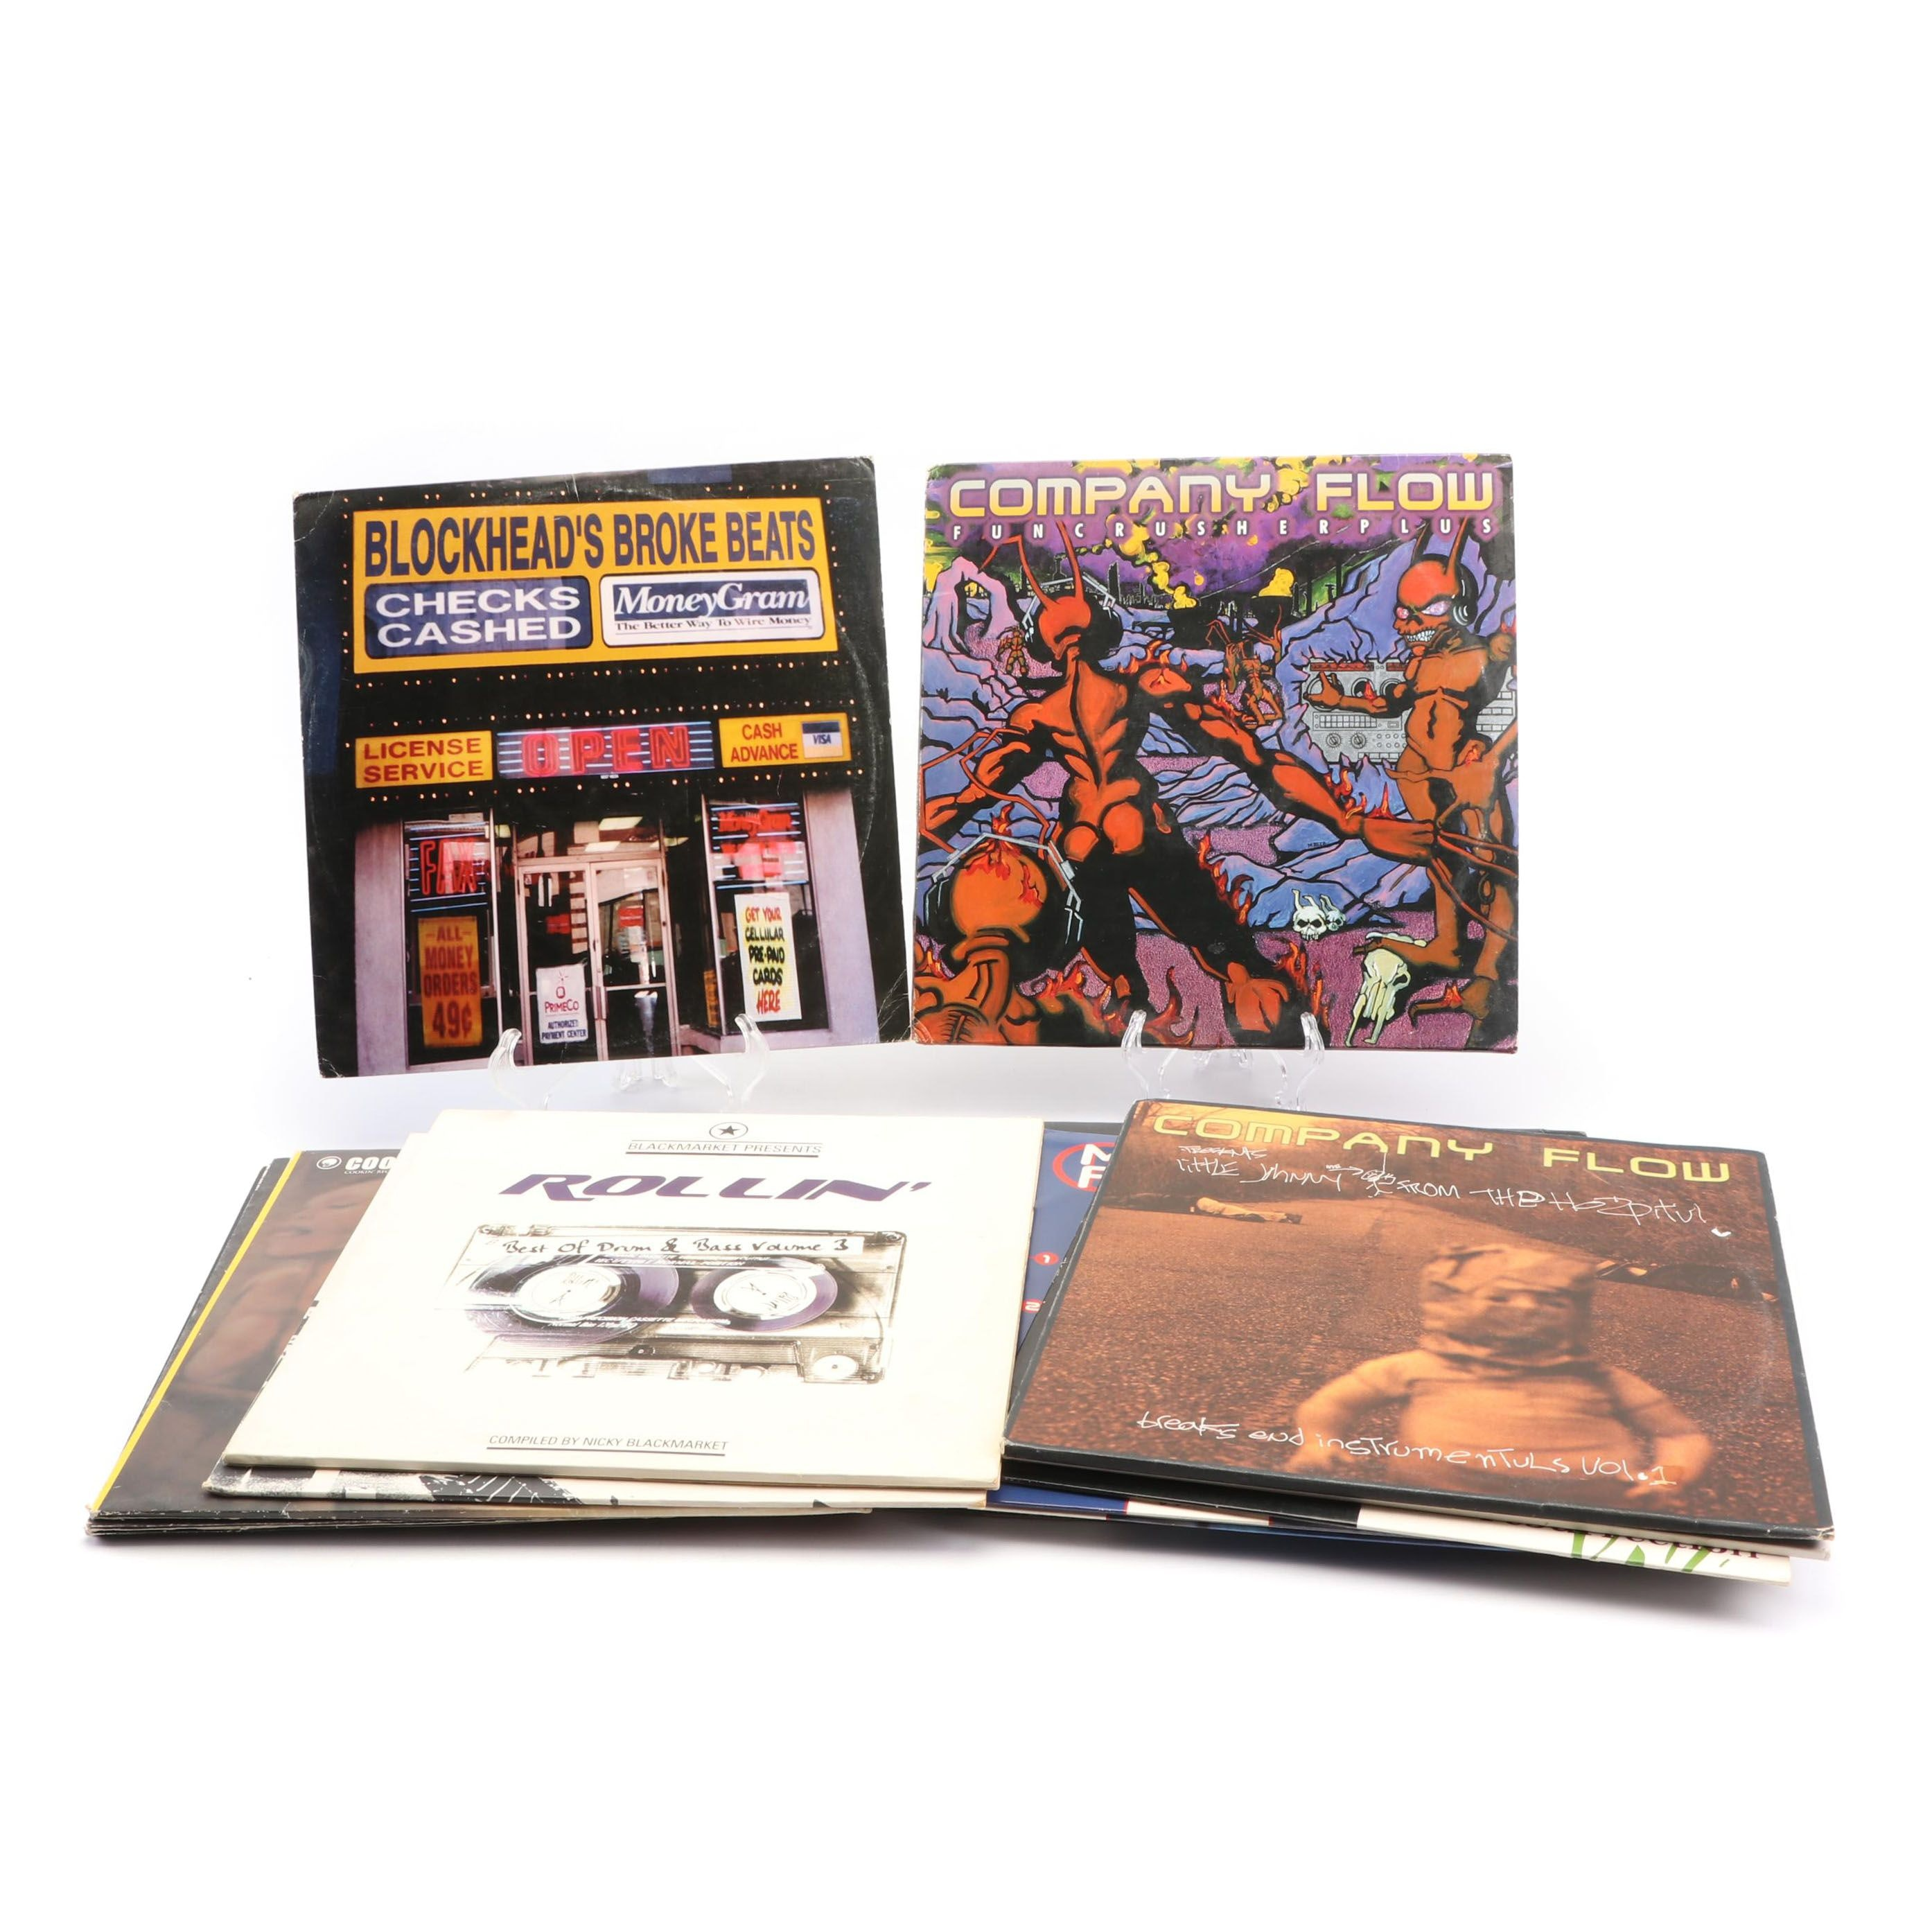 Underground Rap and Hip Hop Records, 1990s-2000s